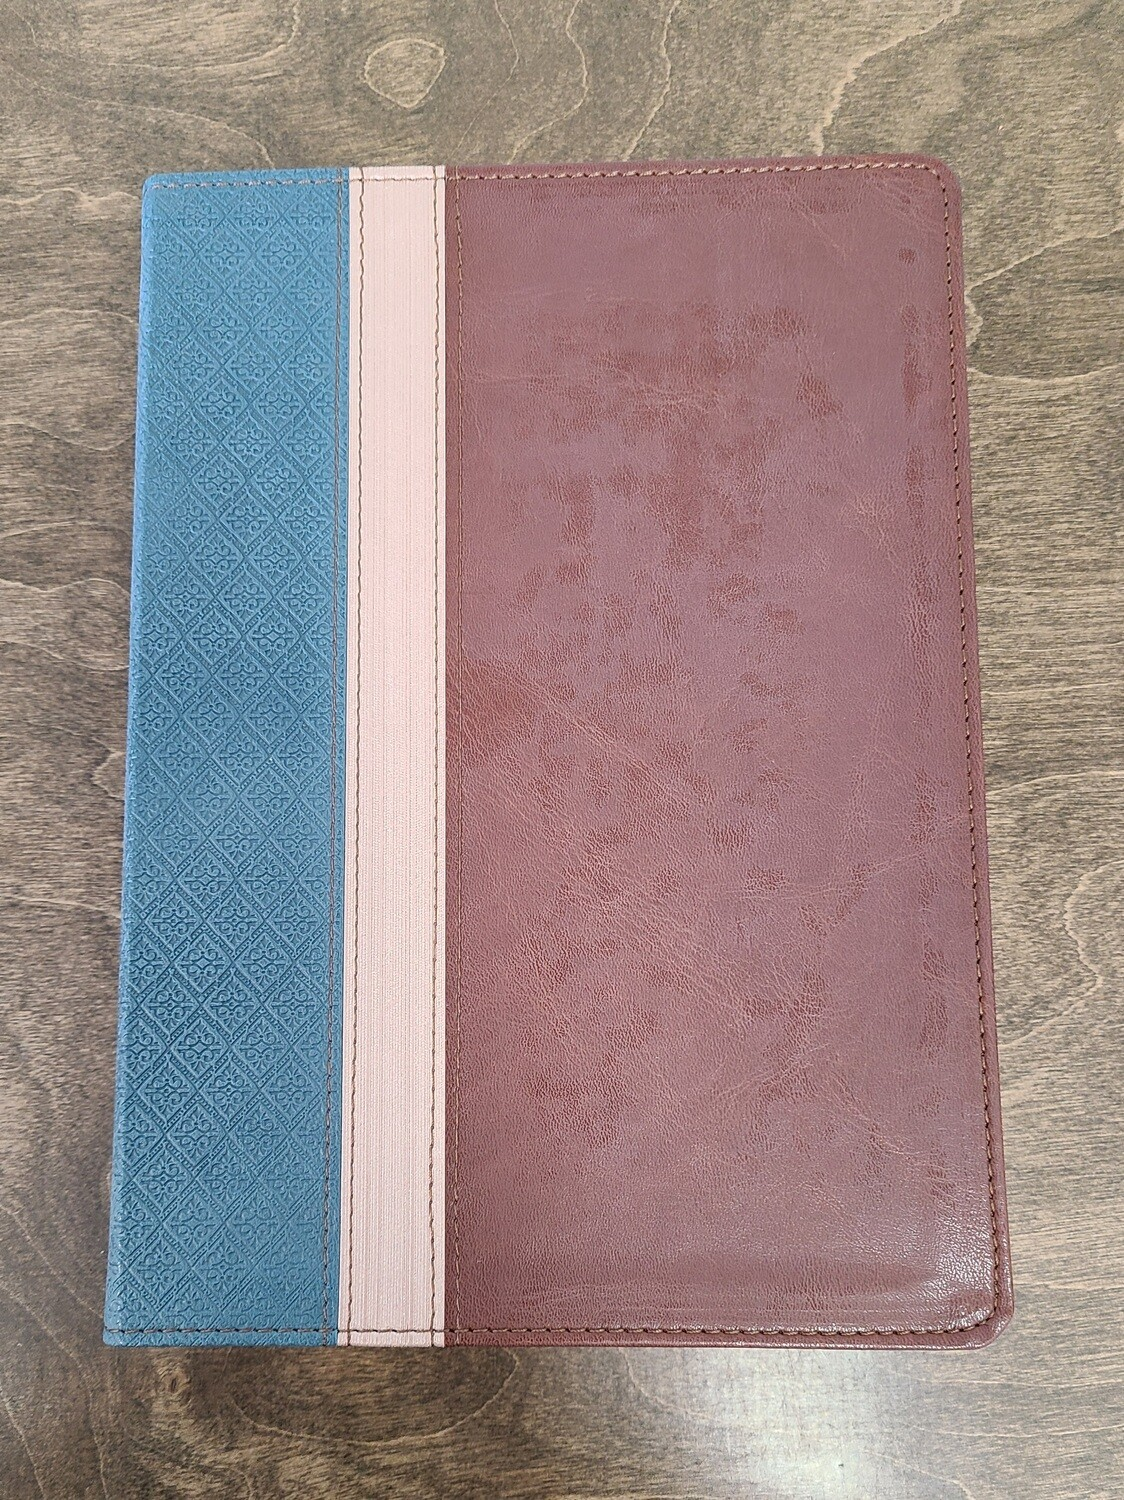 NLT Beyond Suffering Bible - Teal, Brown, and Rose Gold Leather